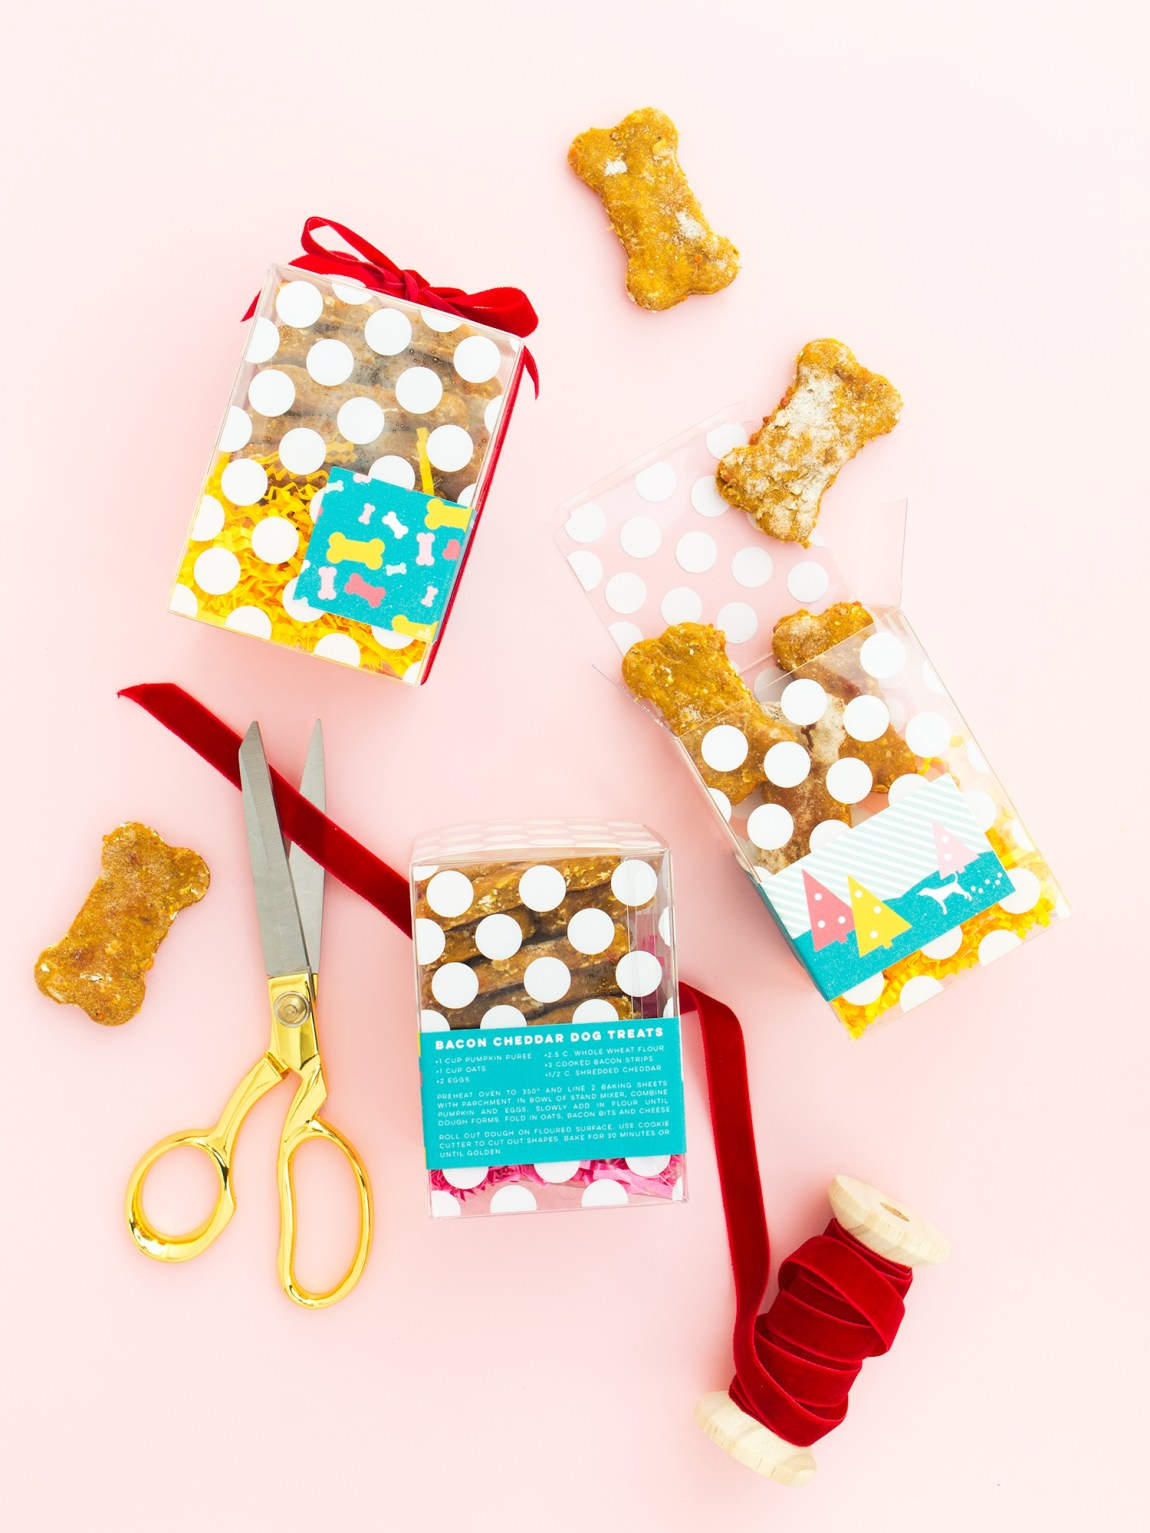 Bake a batch of homemade bacon cheddar dog treats for your favorite pup this holiday season! (Click through for recipe and to download the free printable labels and tags)